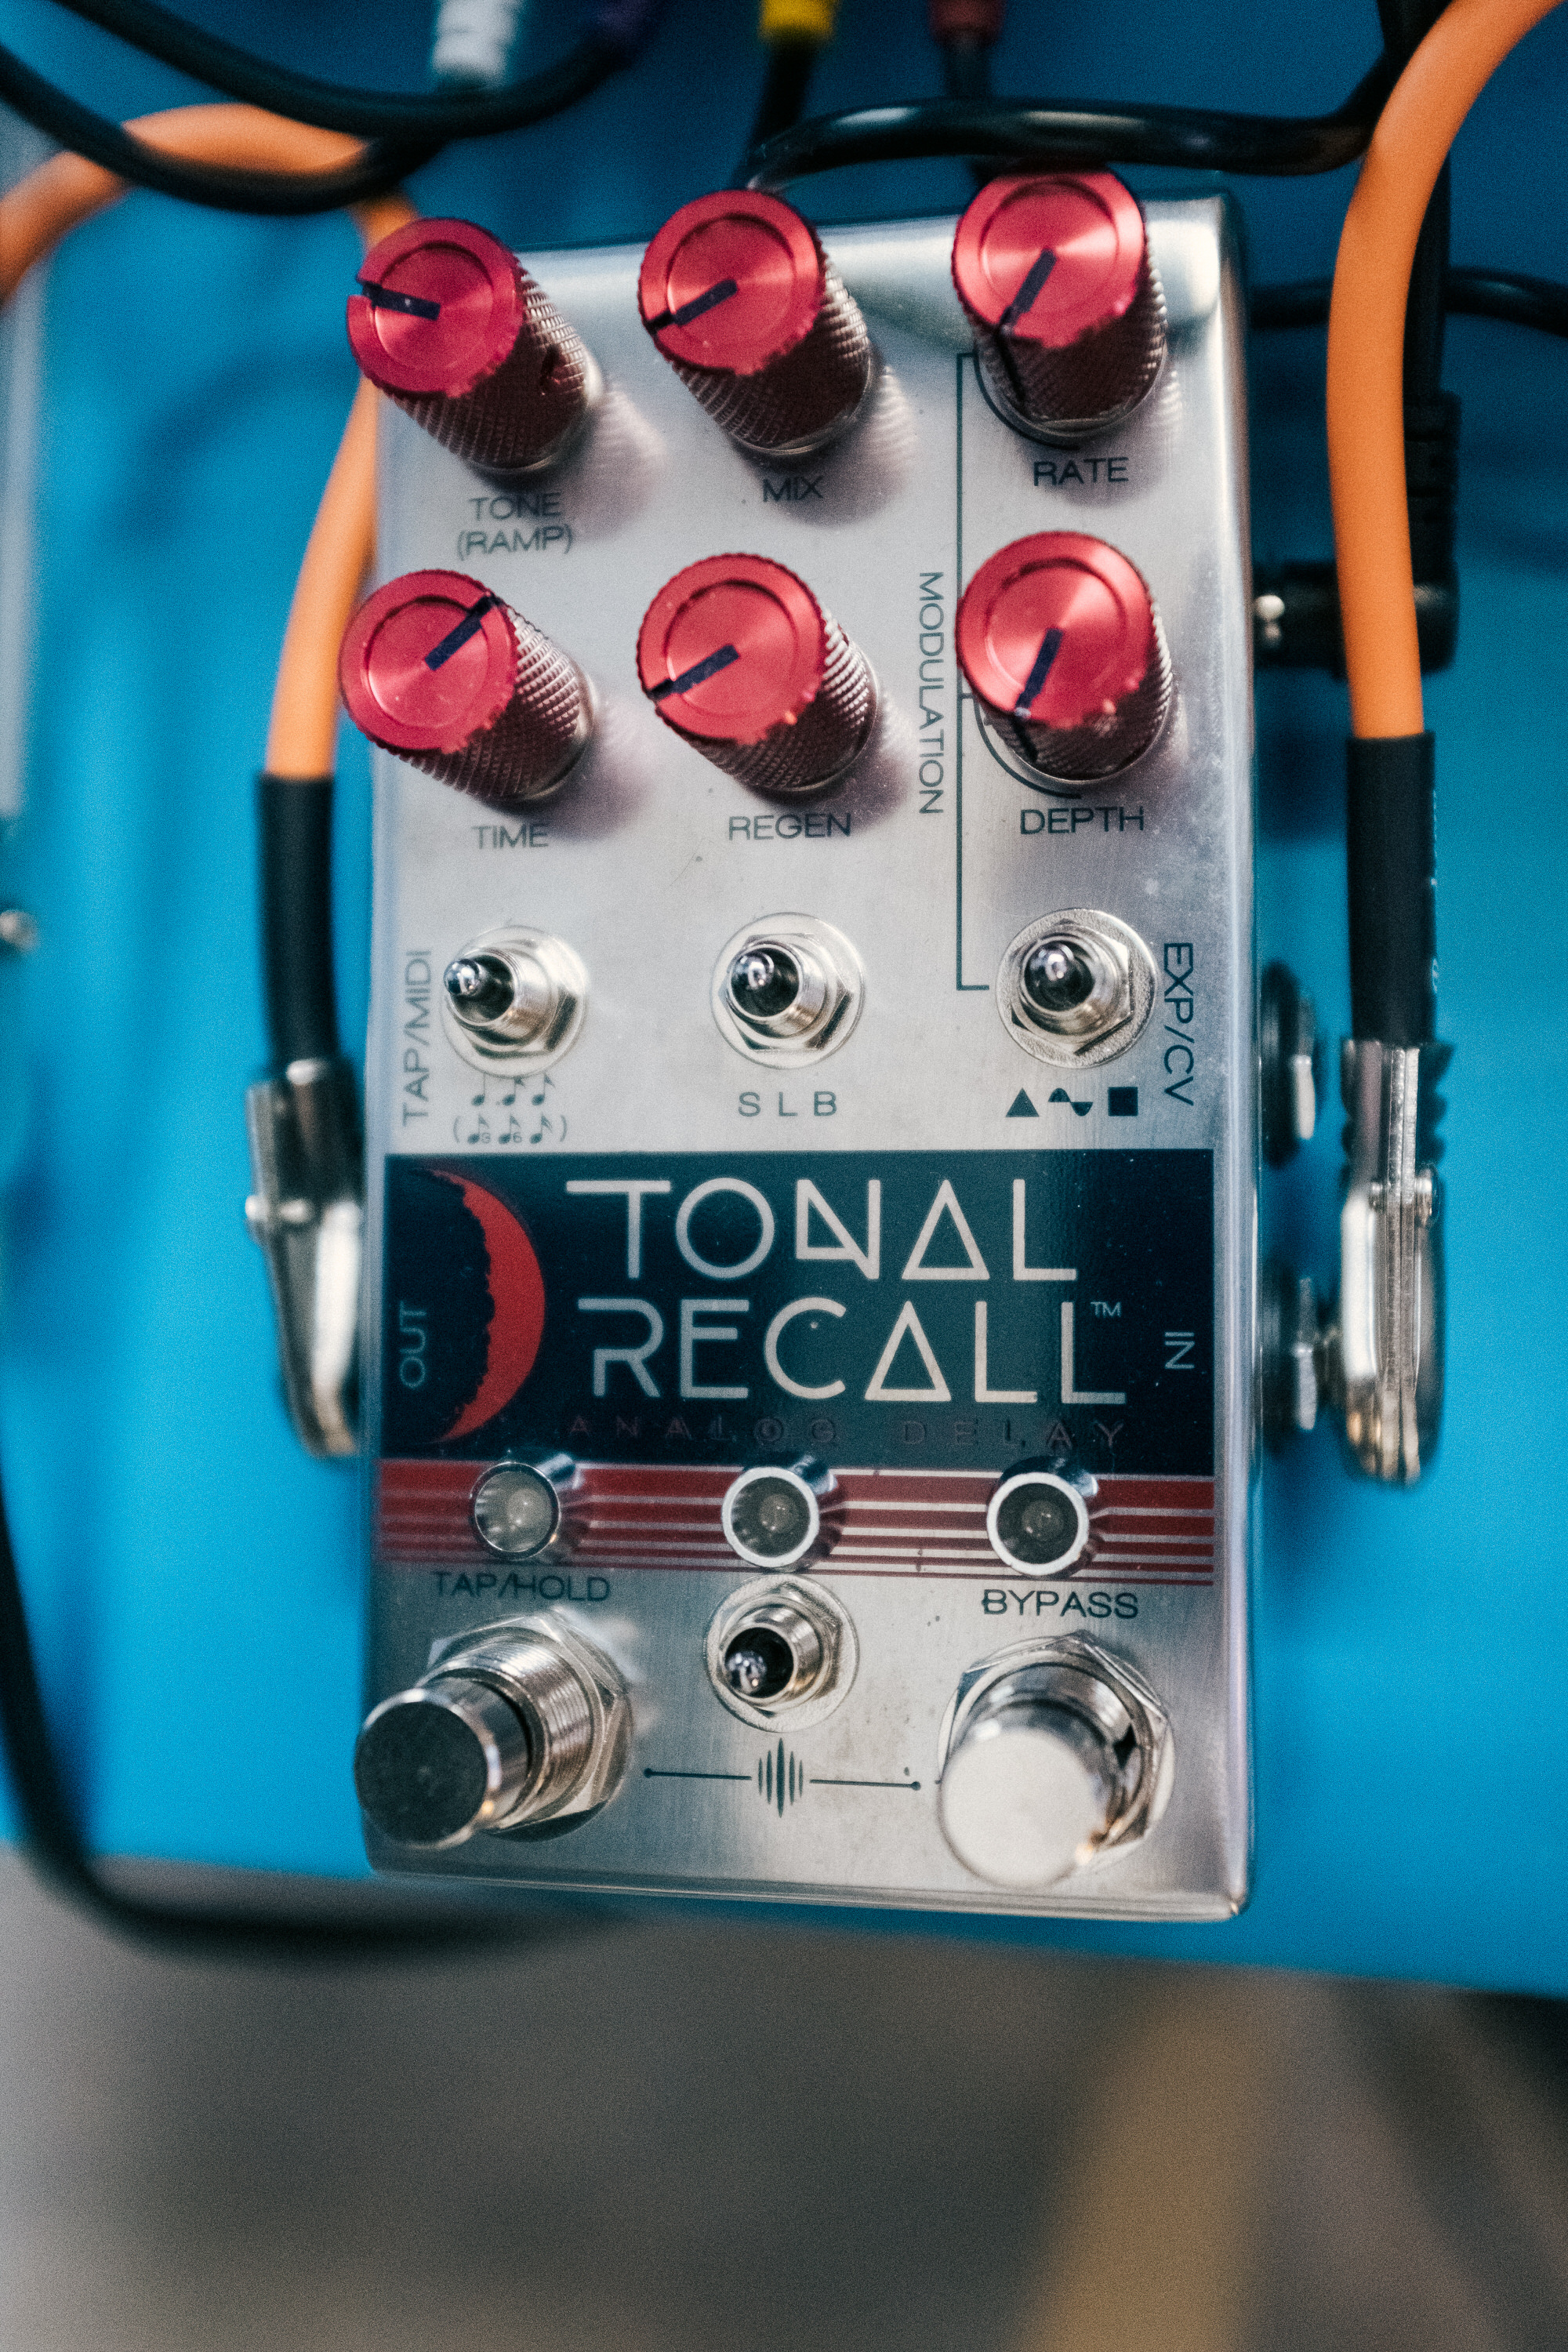 An image of the Chase Bliss Tonal Recall RKM.